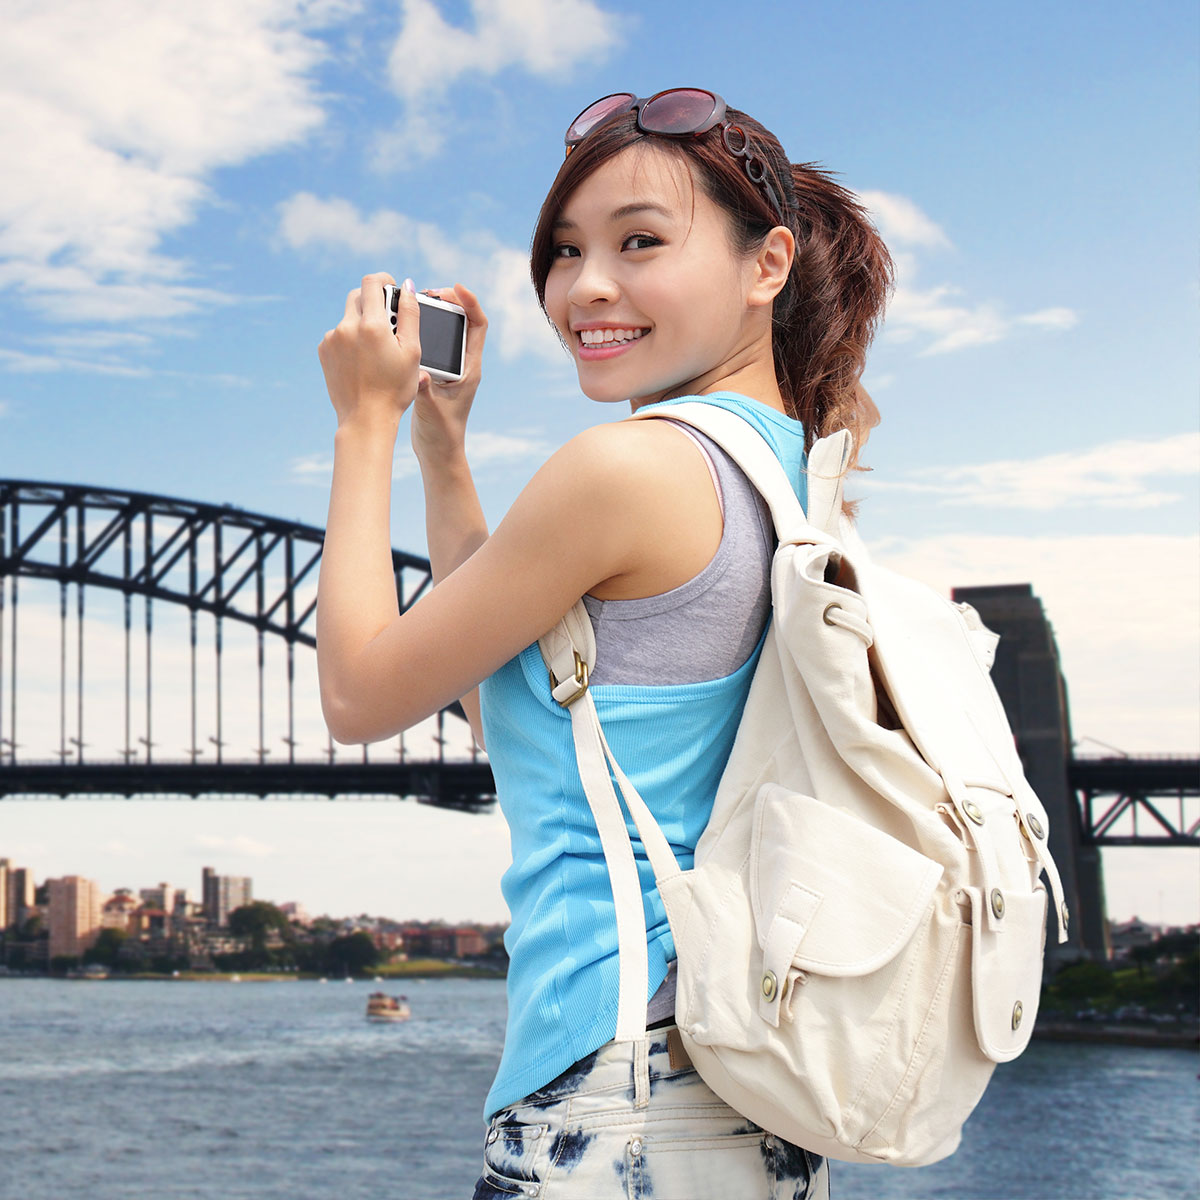 Immigrating to Australia? - get your National Police Check with AFP Check